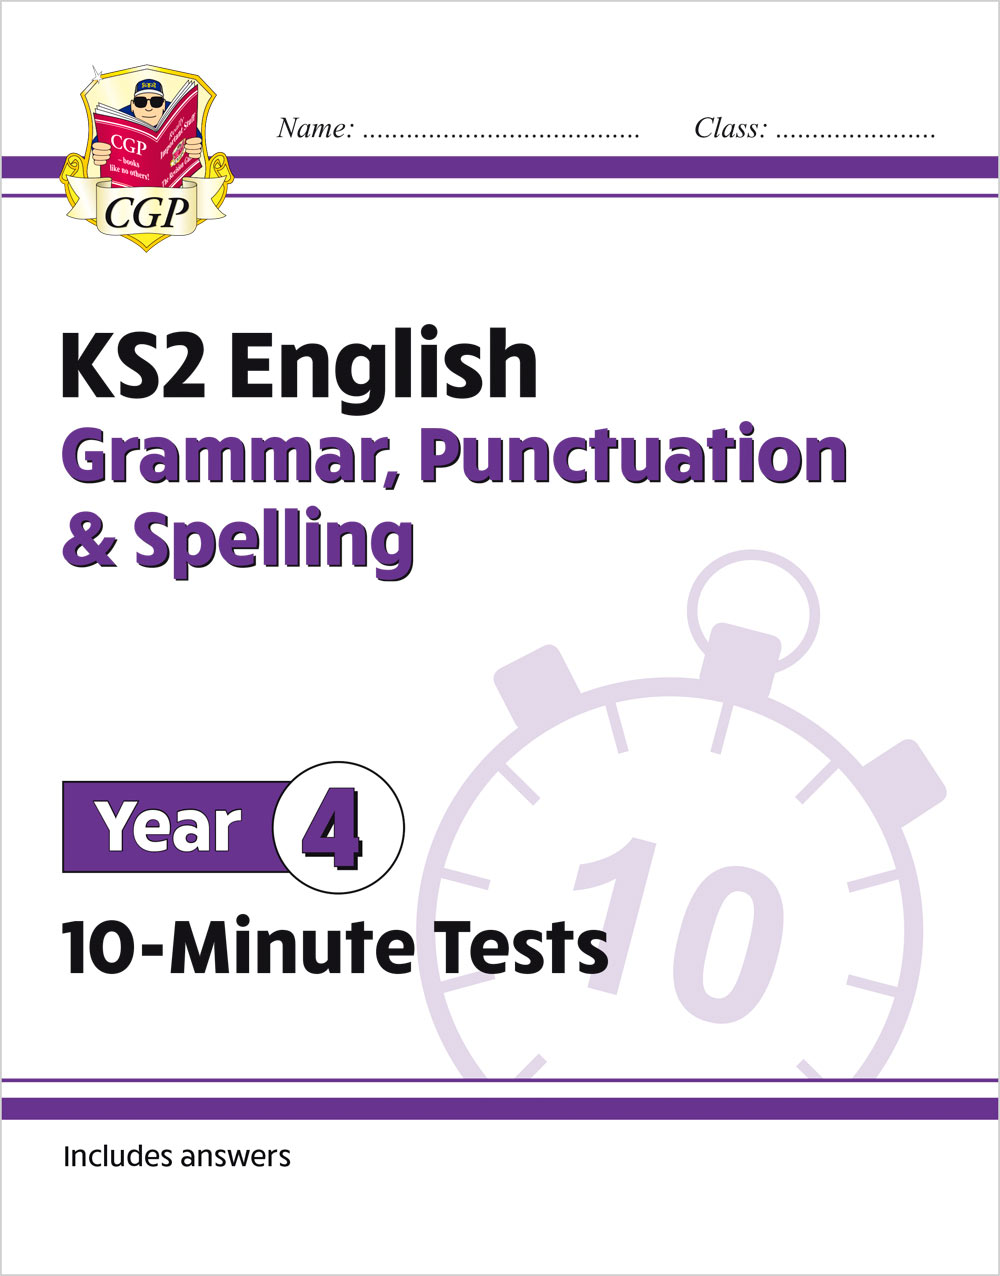 E4GXP21 - New KS2 English 10-Minute Tests: Grammar, Punctuation & Spelling - Year 4